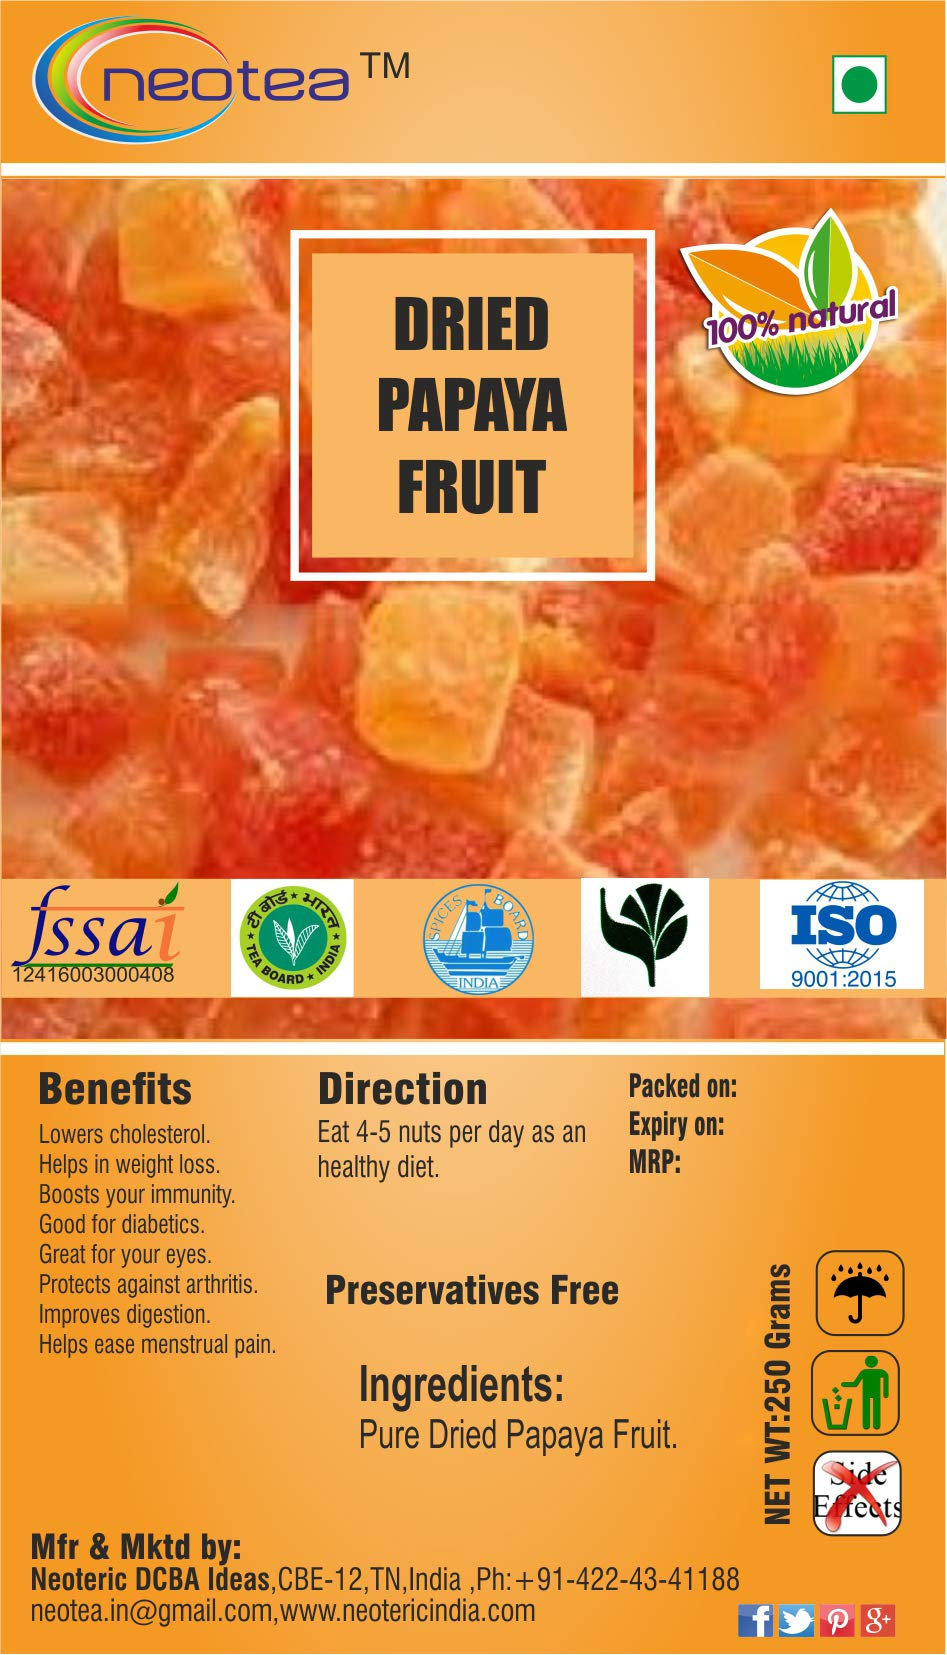 Neotea Dried Papaya Fruit (250g)